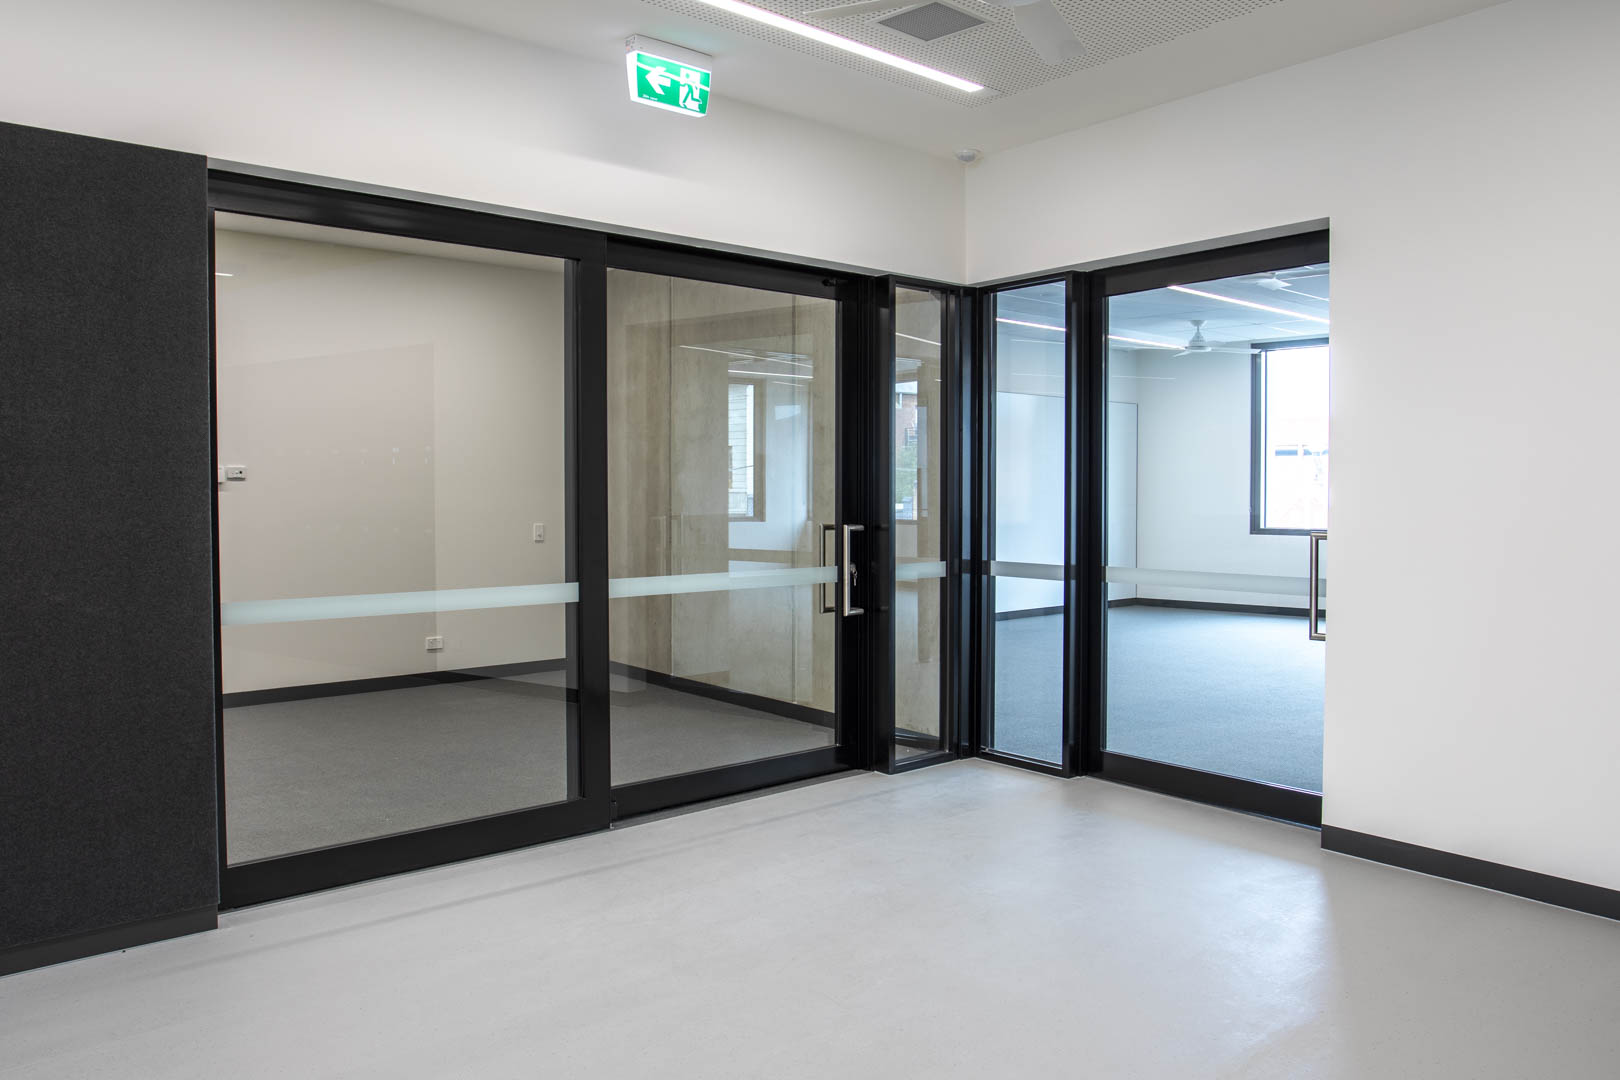 image of a GLYDE acoustic sliding door in a high school